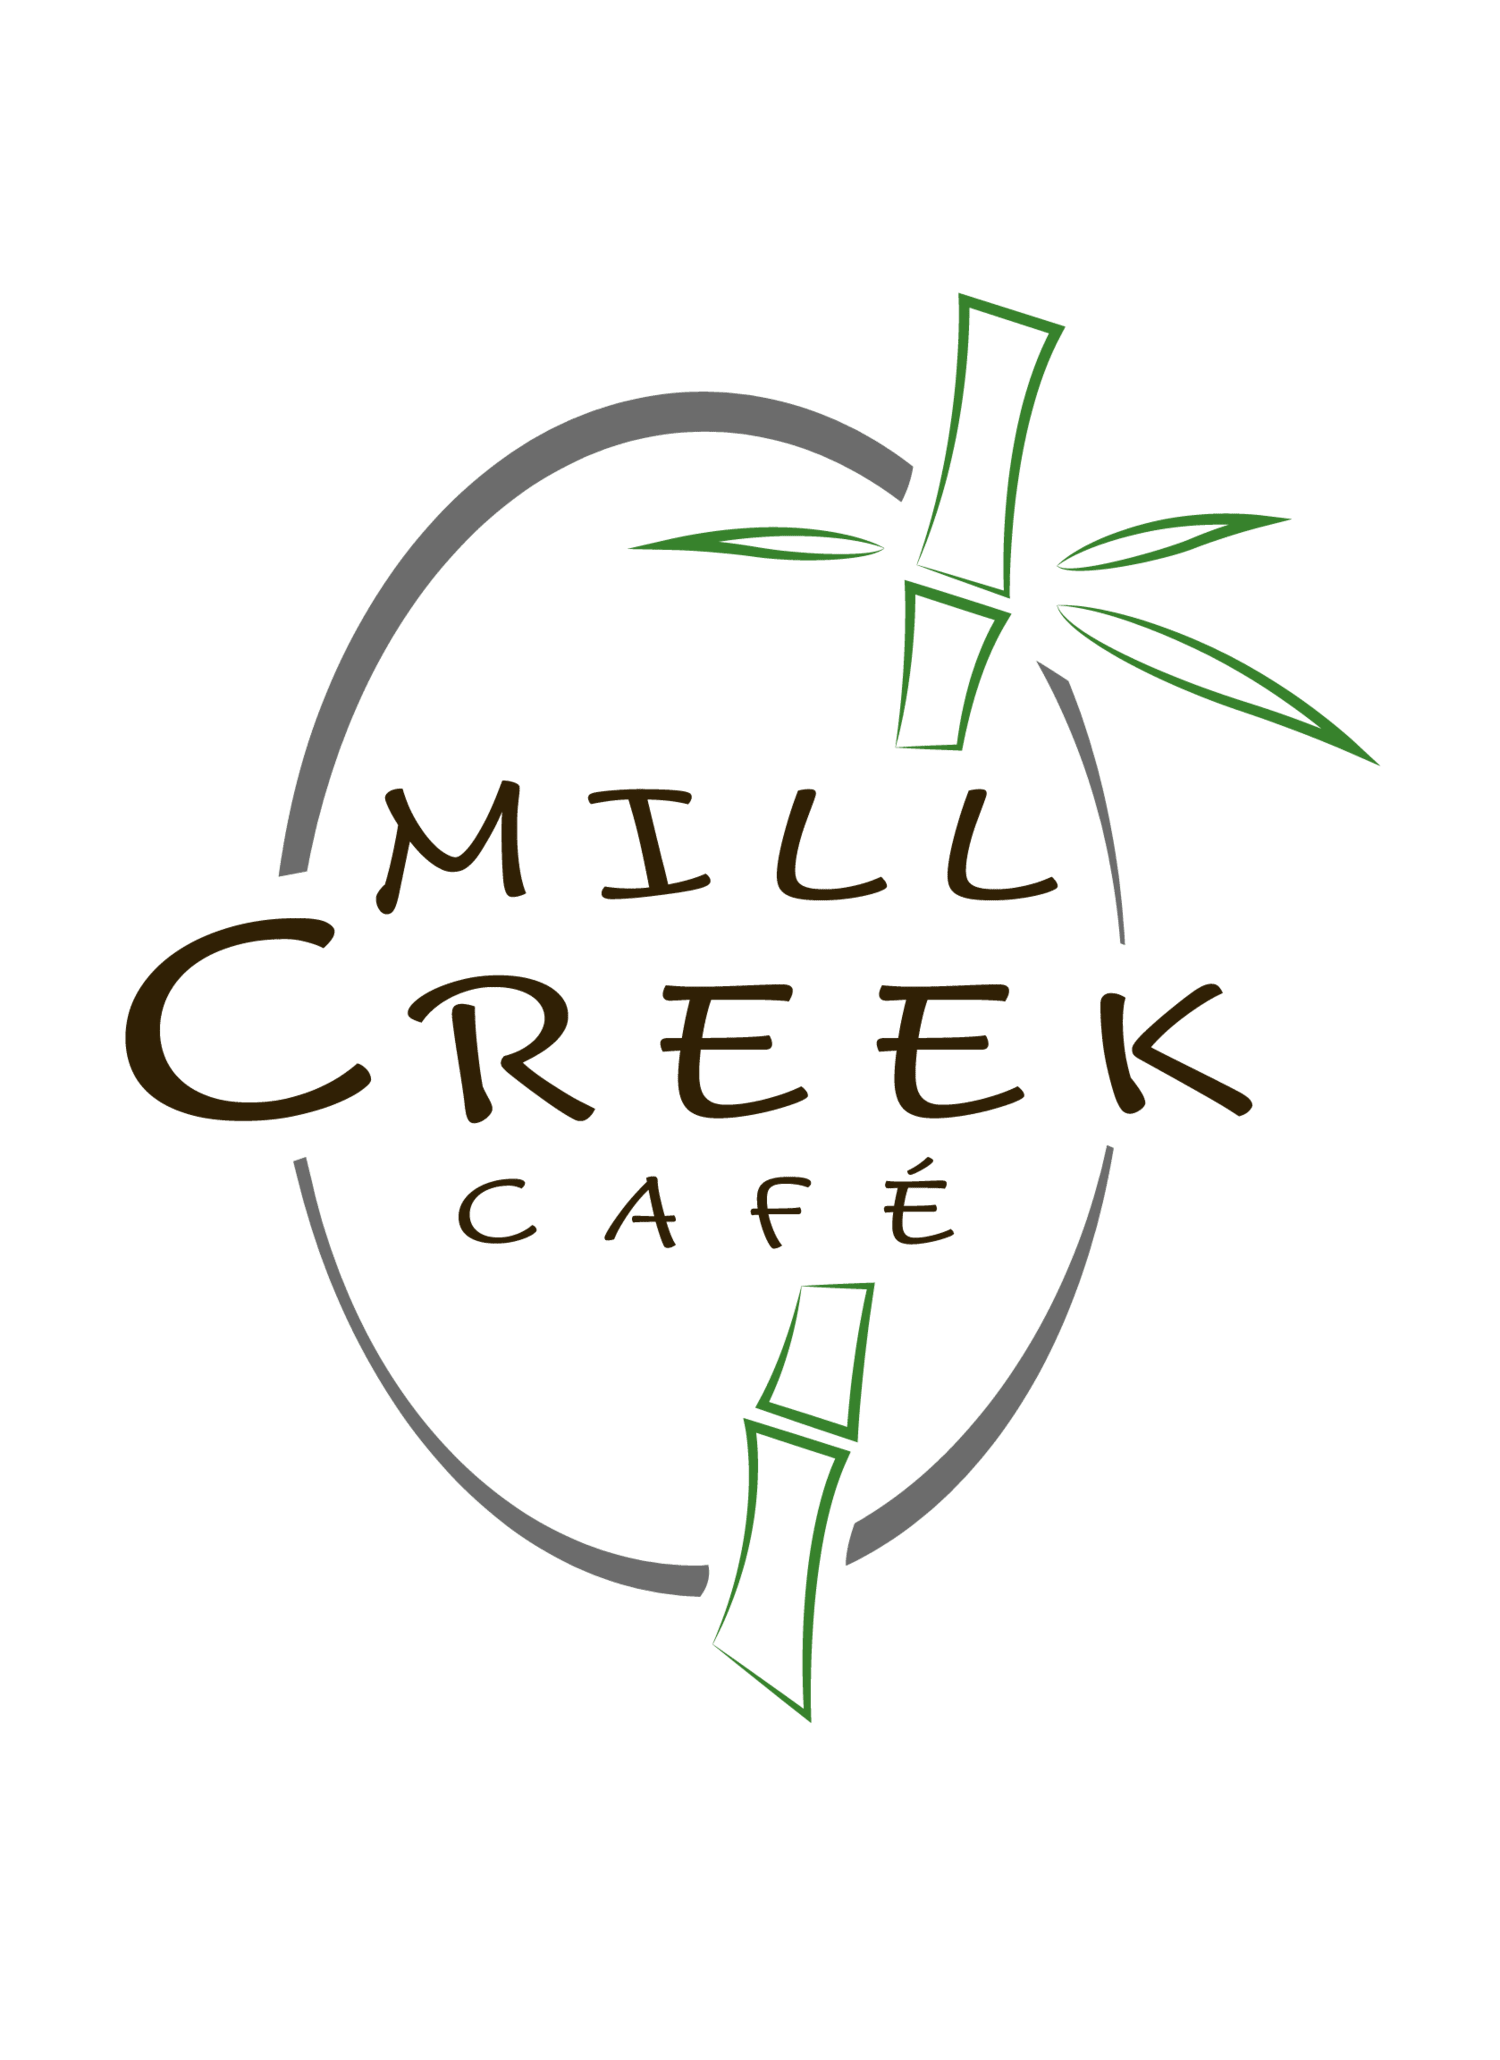 mill creek cafe lol